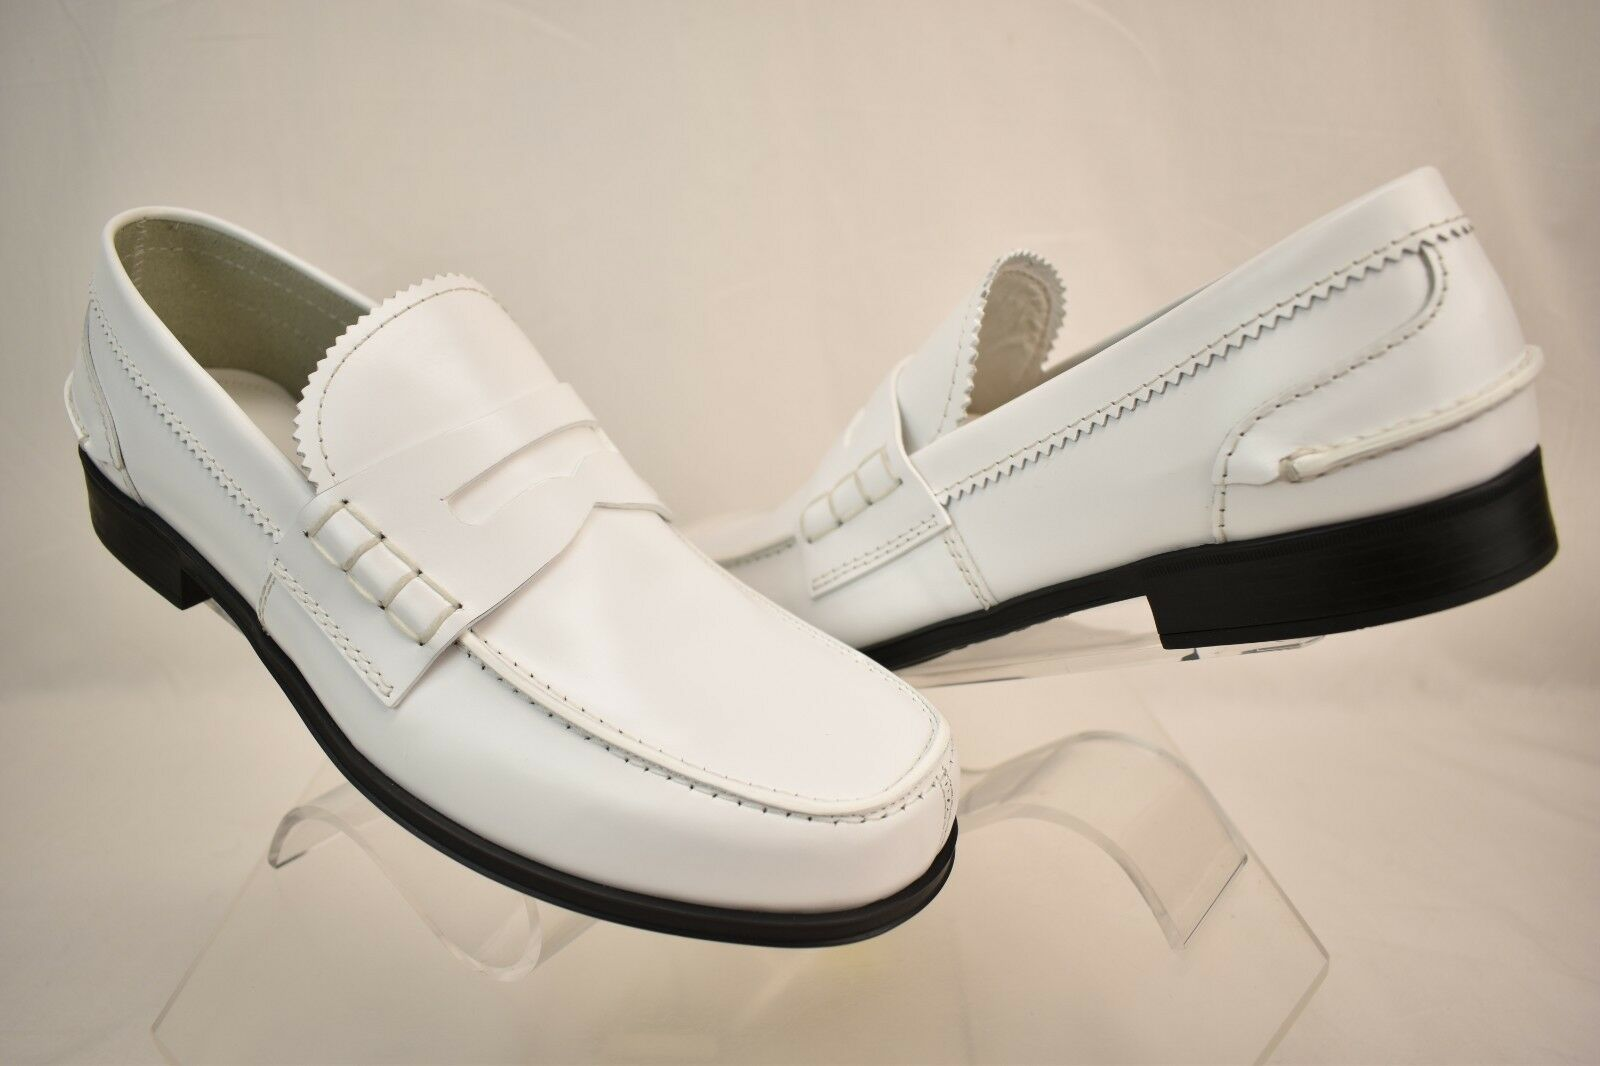 NIB PRADA WHITE POLISHED LEATHER PENNY MOCCASIN LOAFERS 8.5 US 9.5  850 ITALY